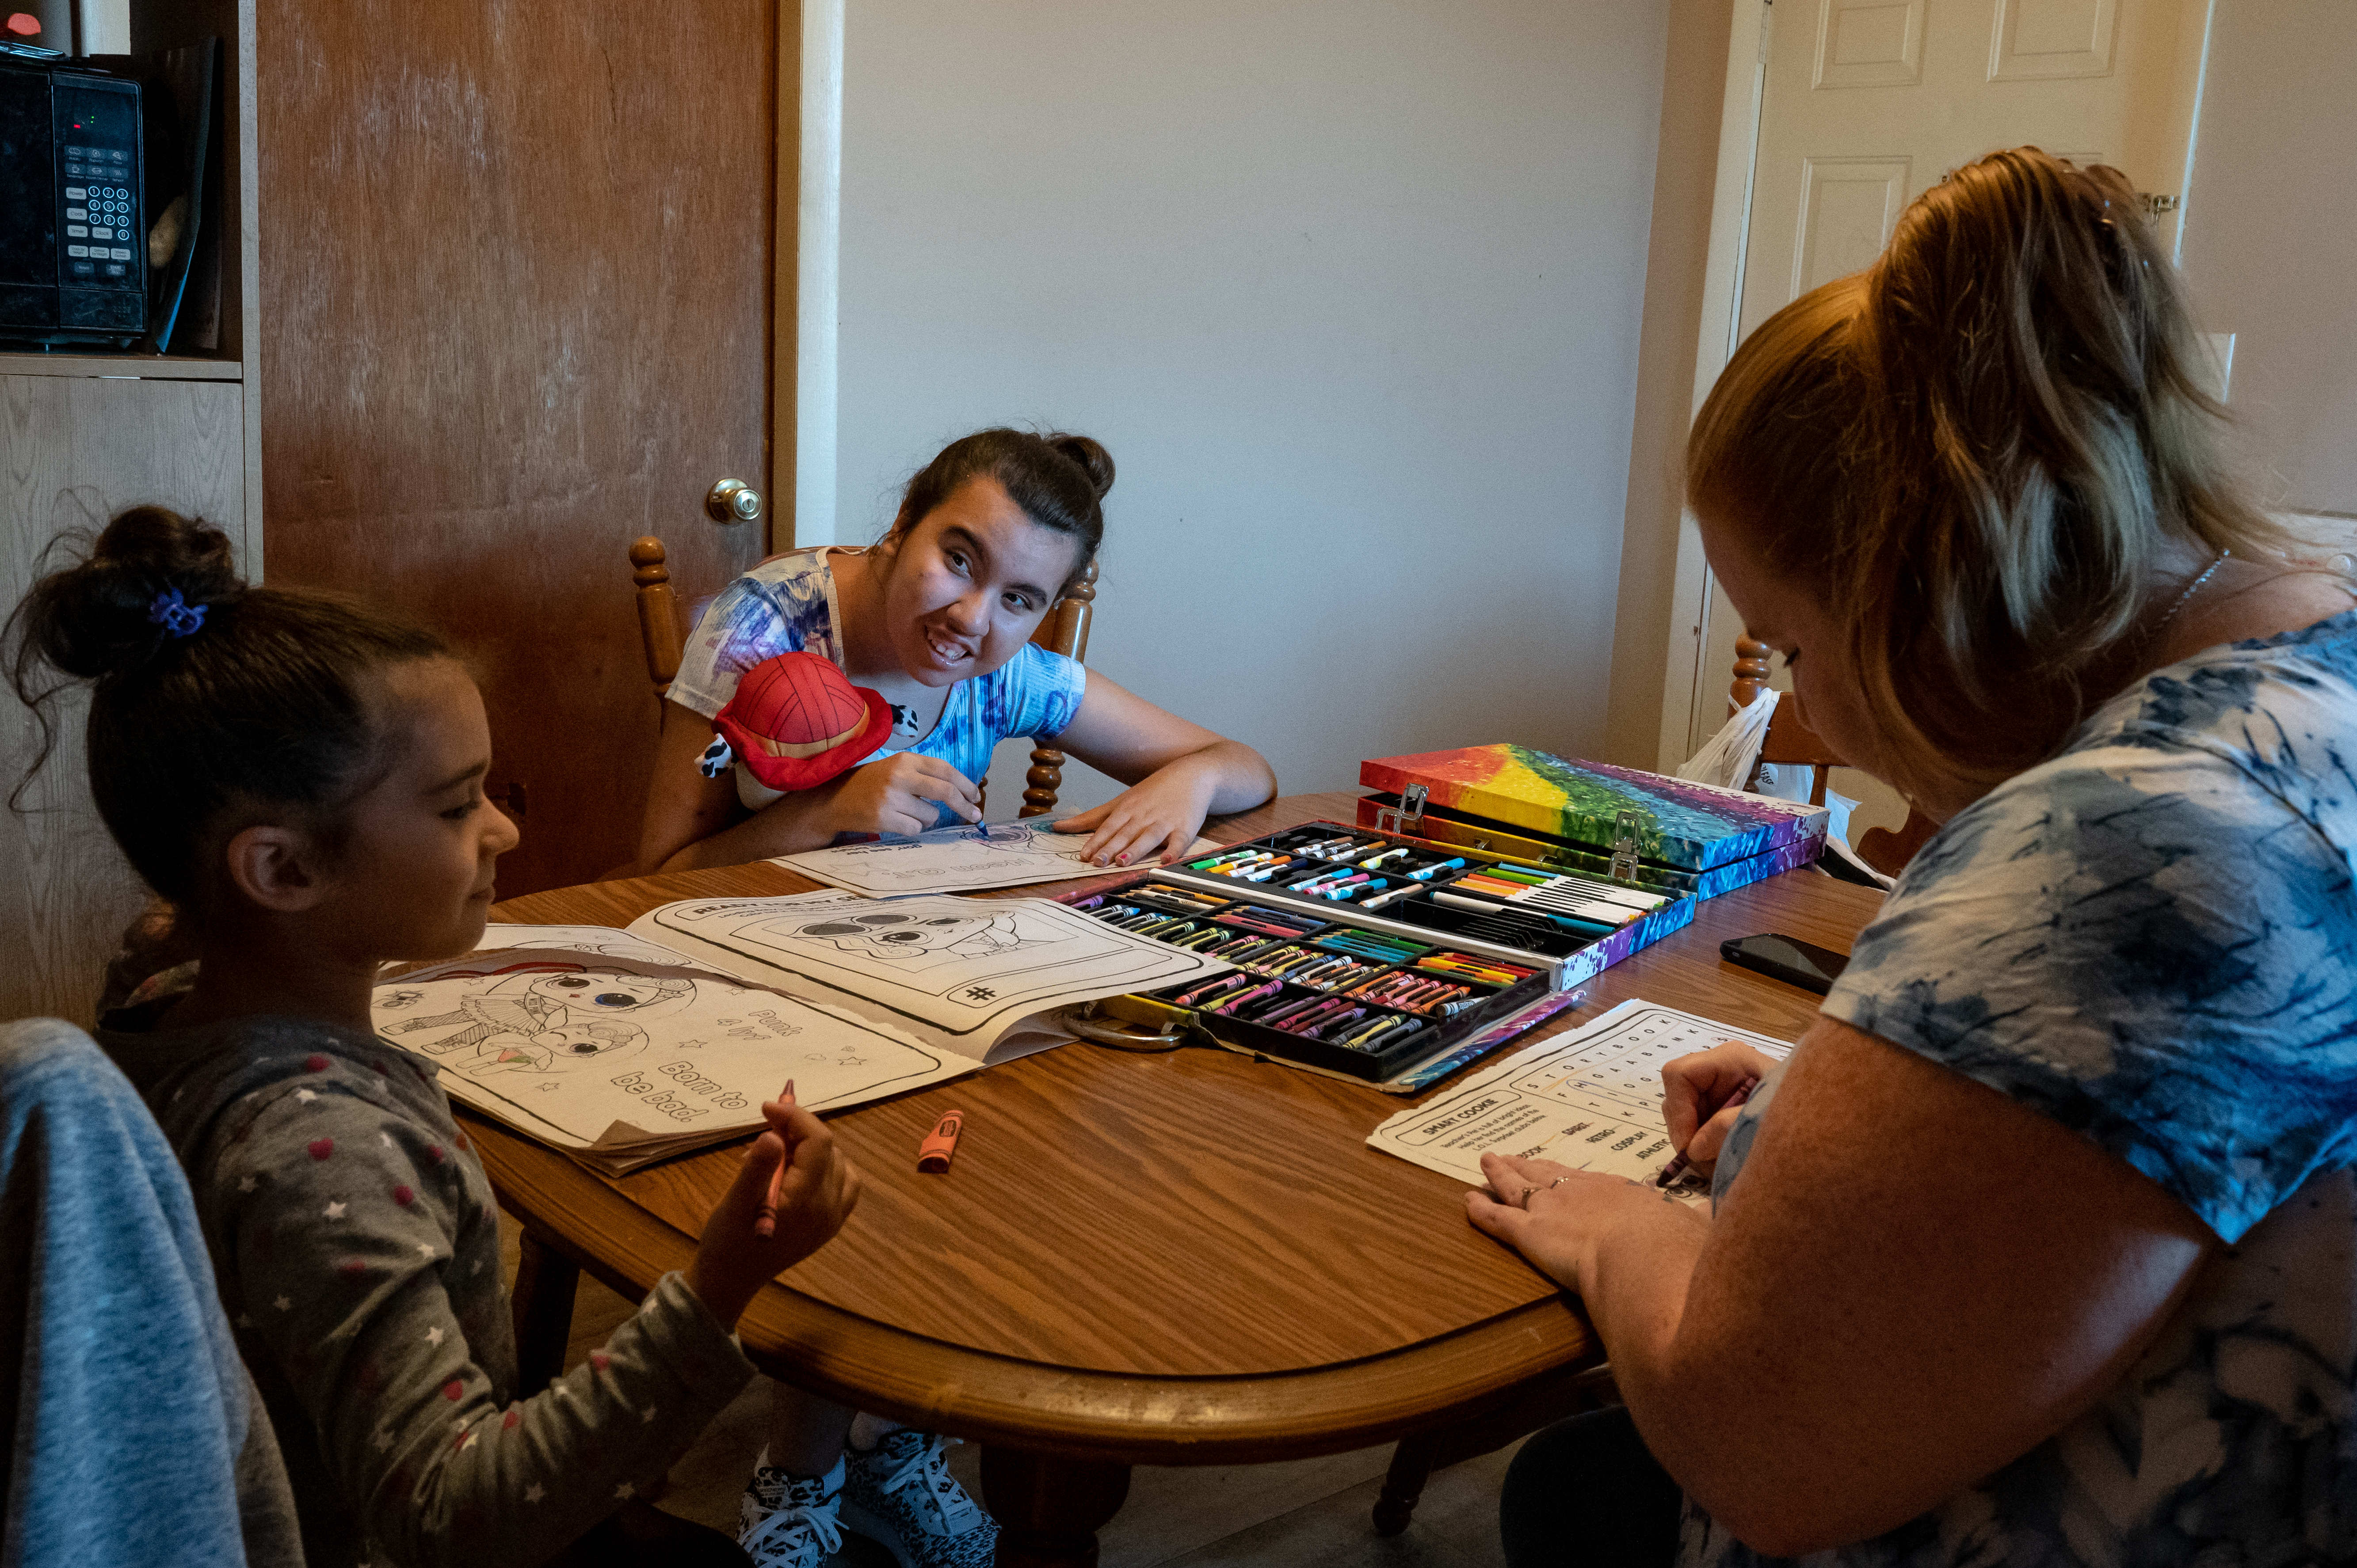 Two girls and a woman color in coloring books together at a dining room table.